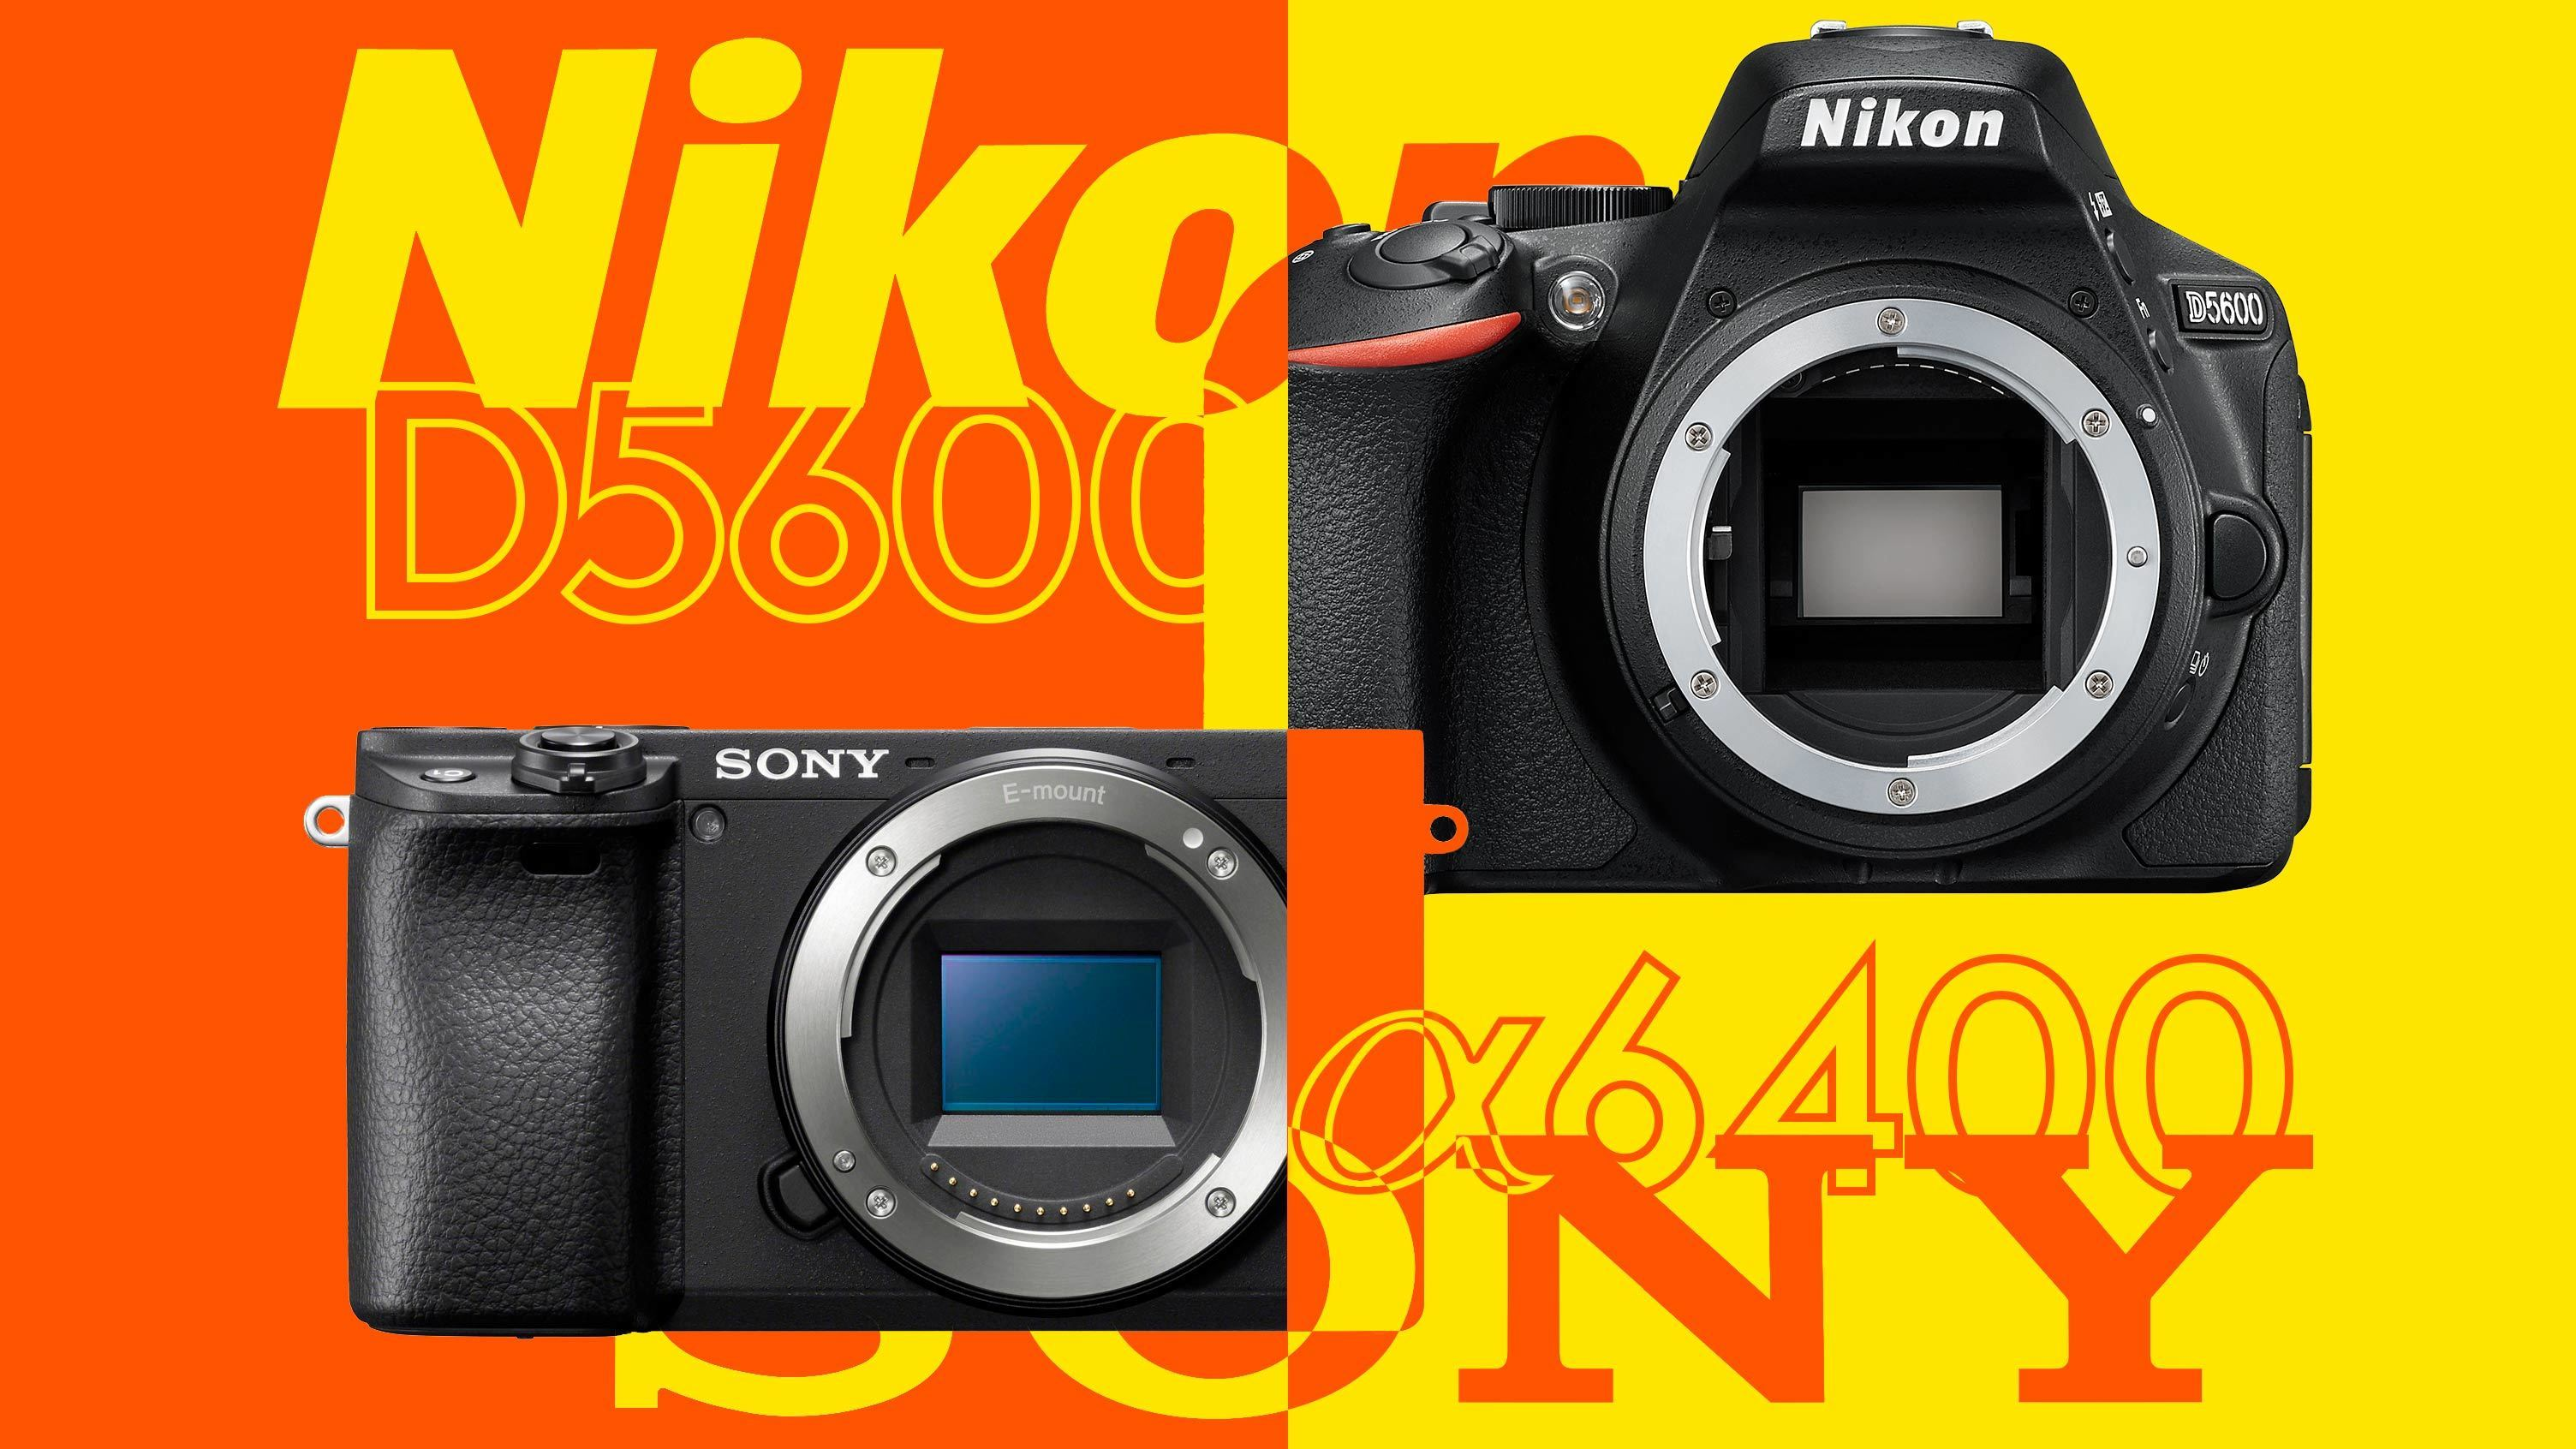 Nikon D5600 vs Sony a6400: Which Should You Buy? – Light And Matter